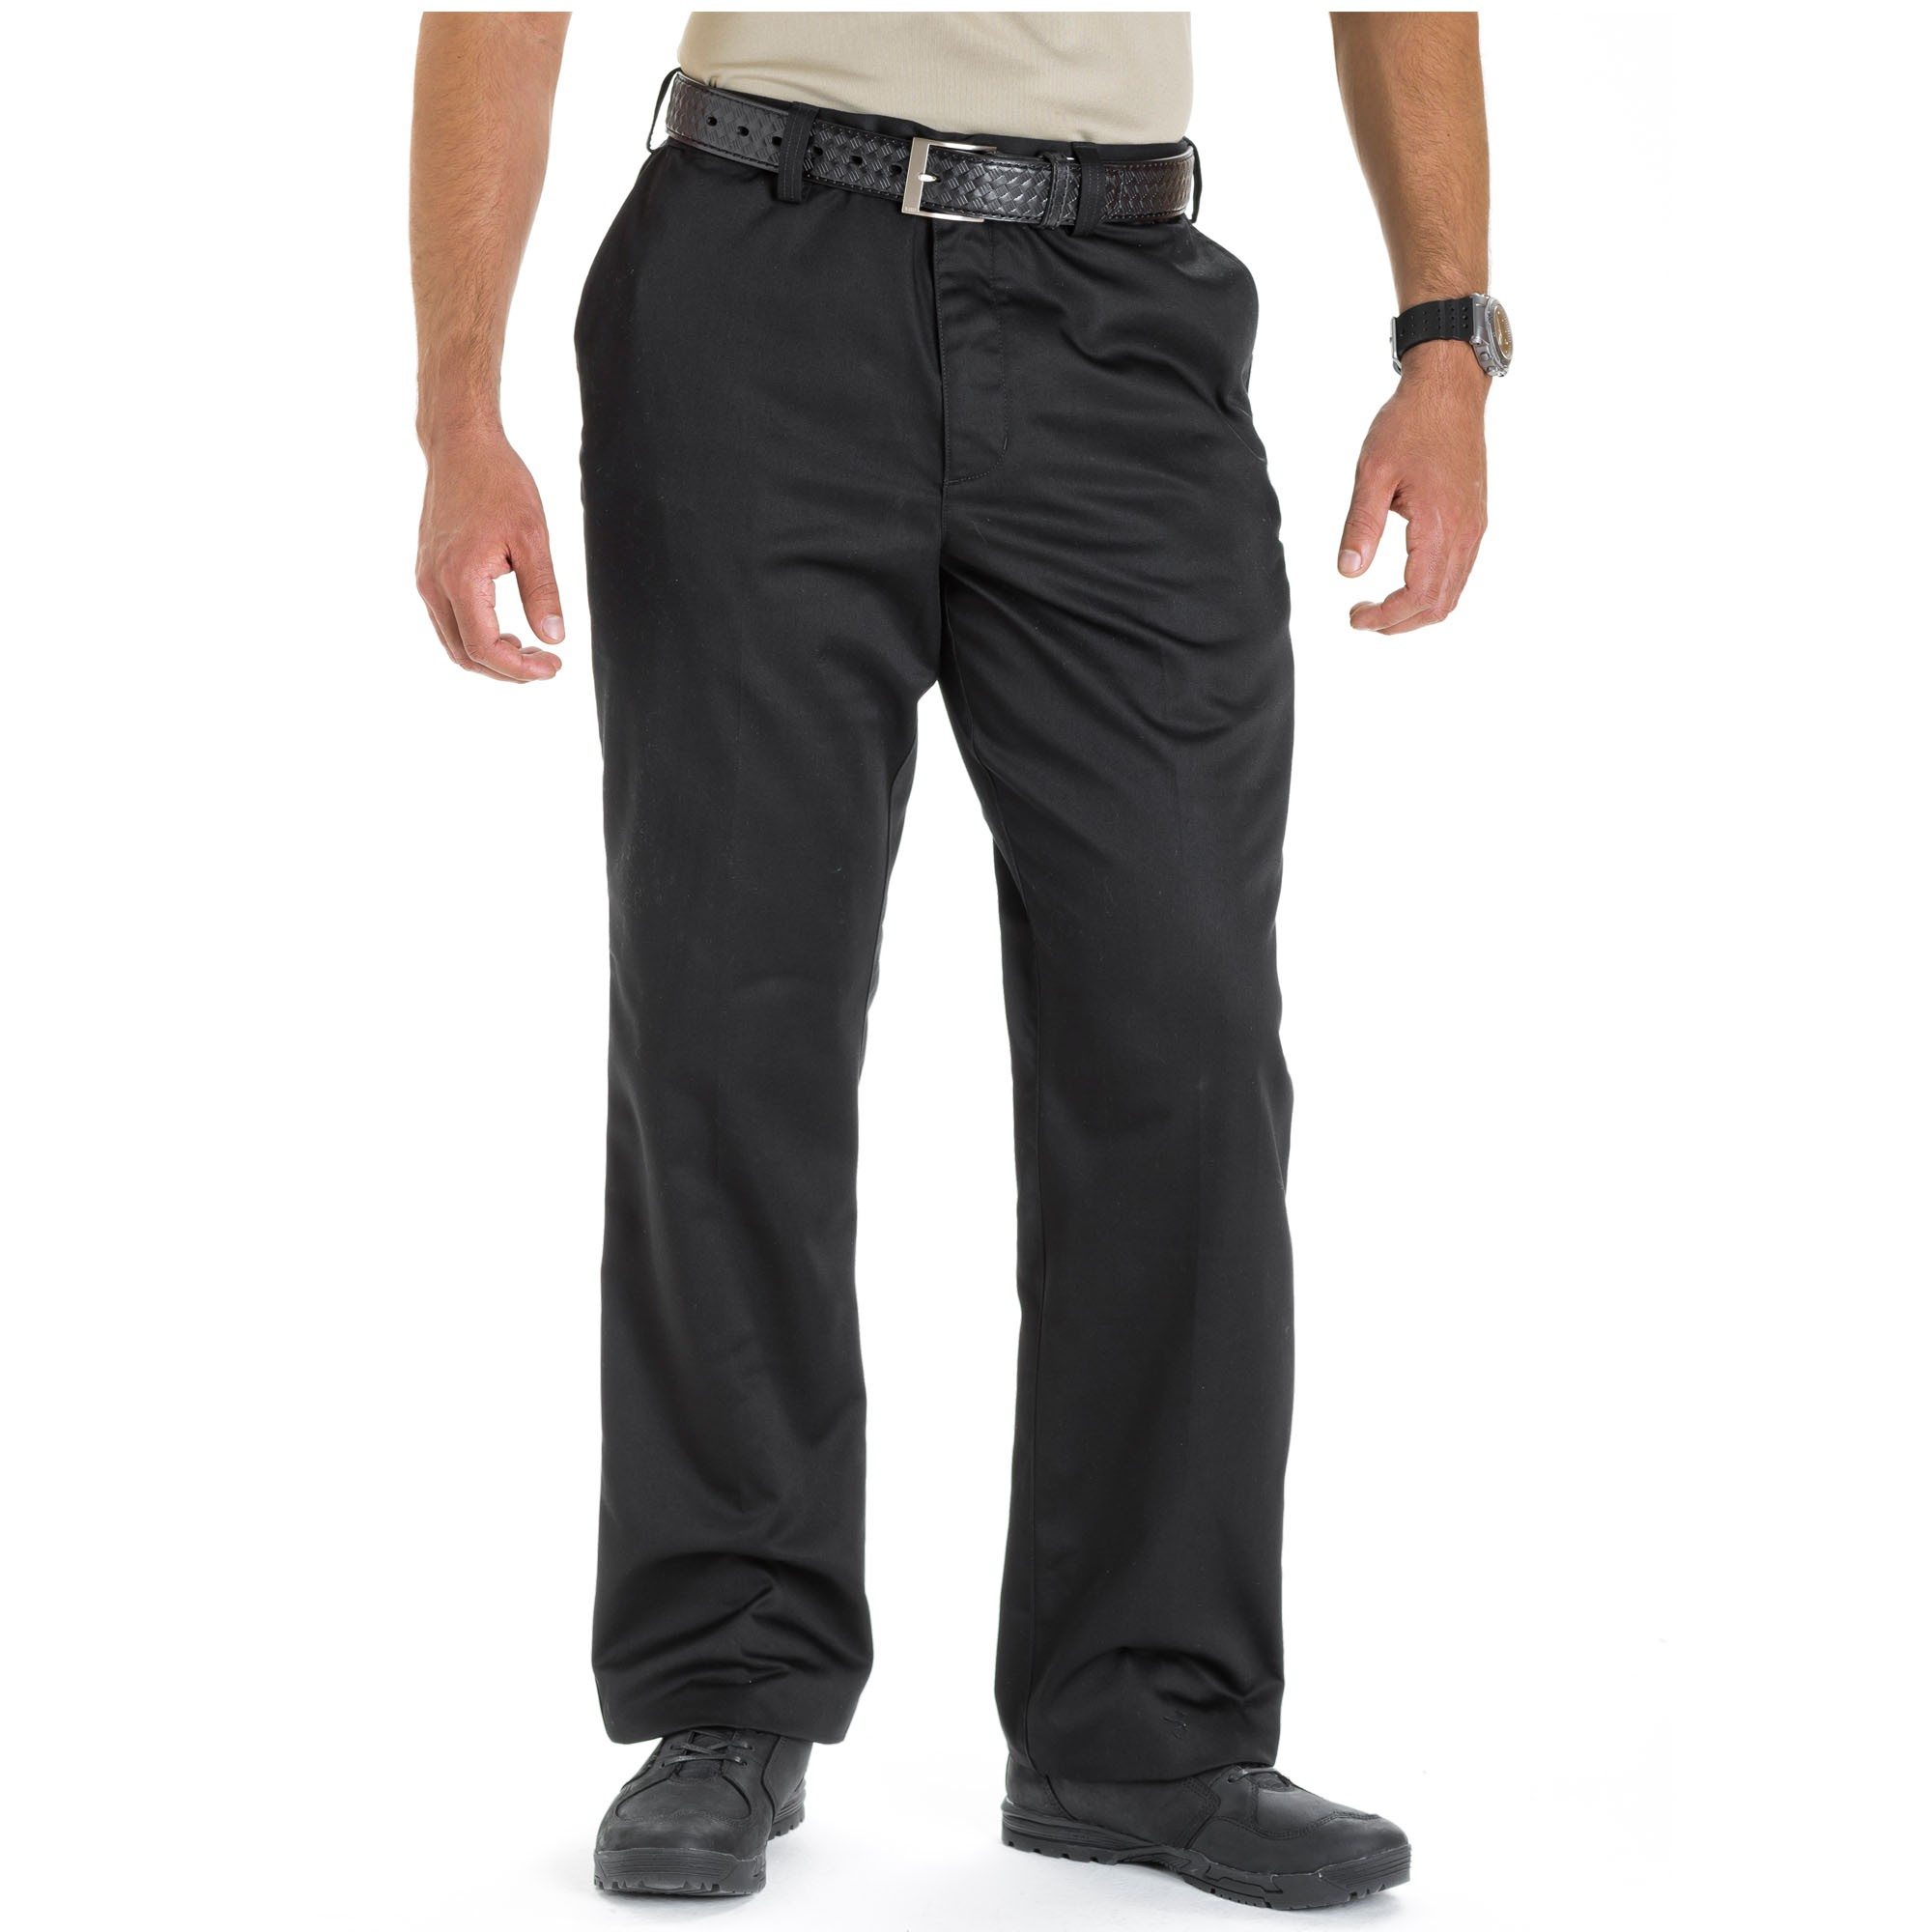 5.11 Covert Khaki 2.0 Pants